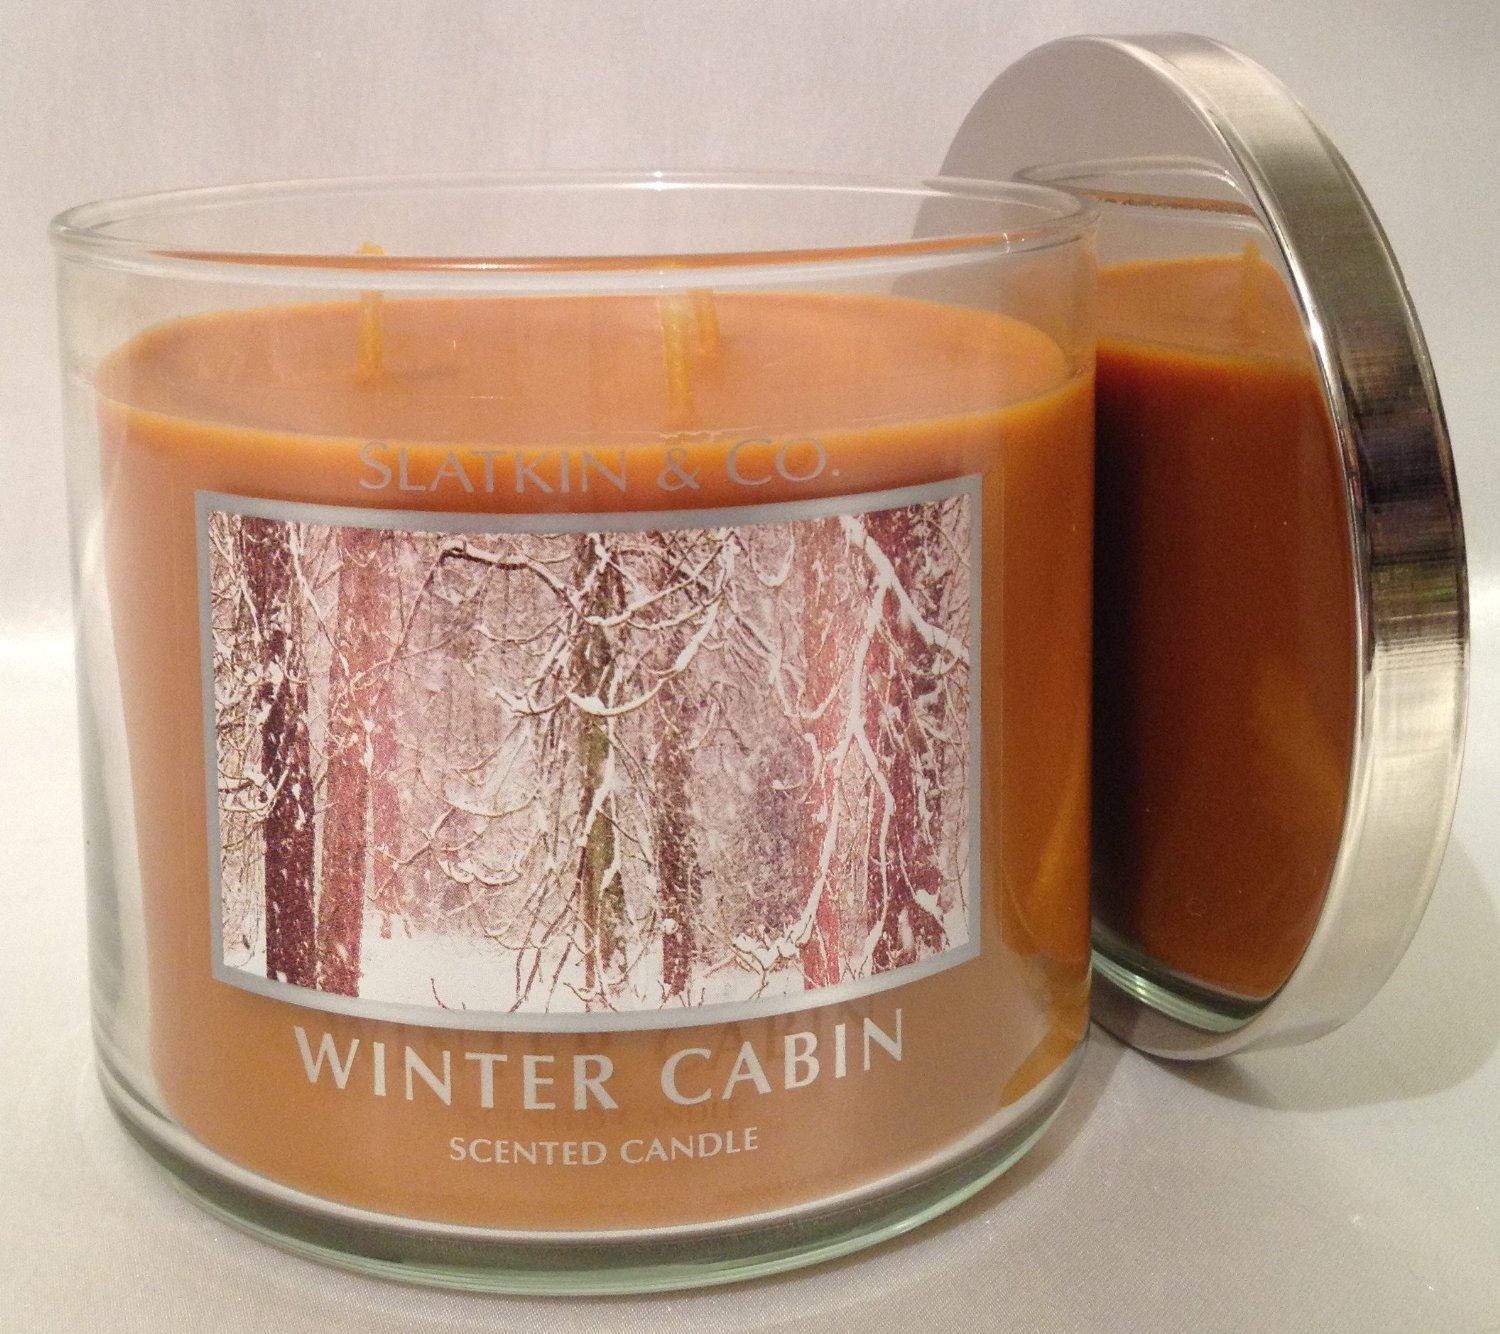 Bath & Body Works Slatkin & Co. WINTER CABIN Scented Candle 14.5 oz / 411 g